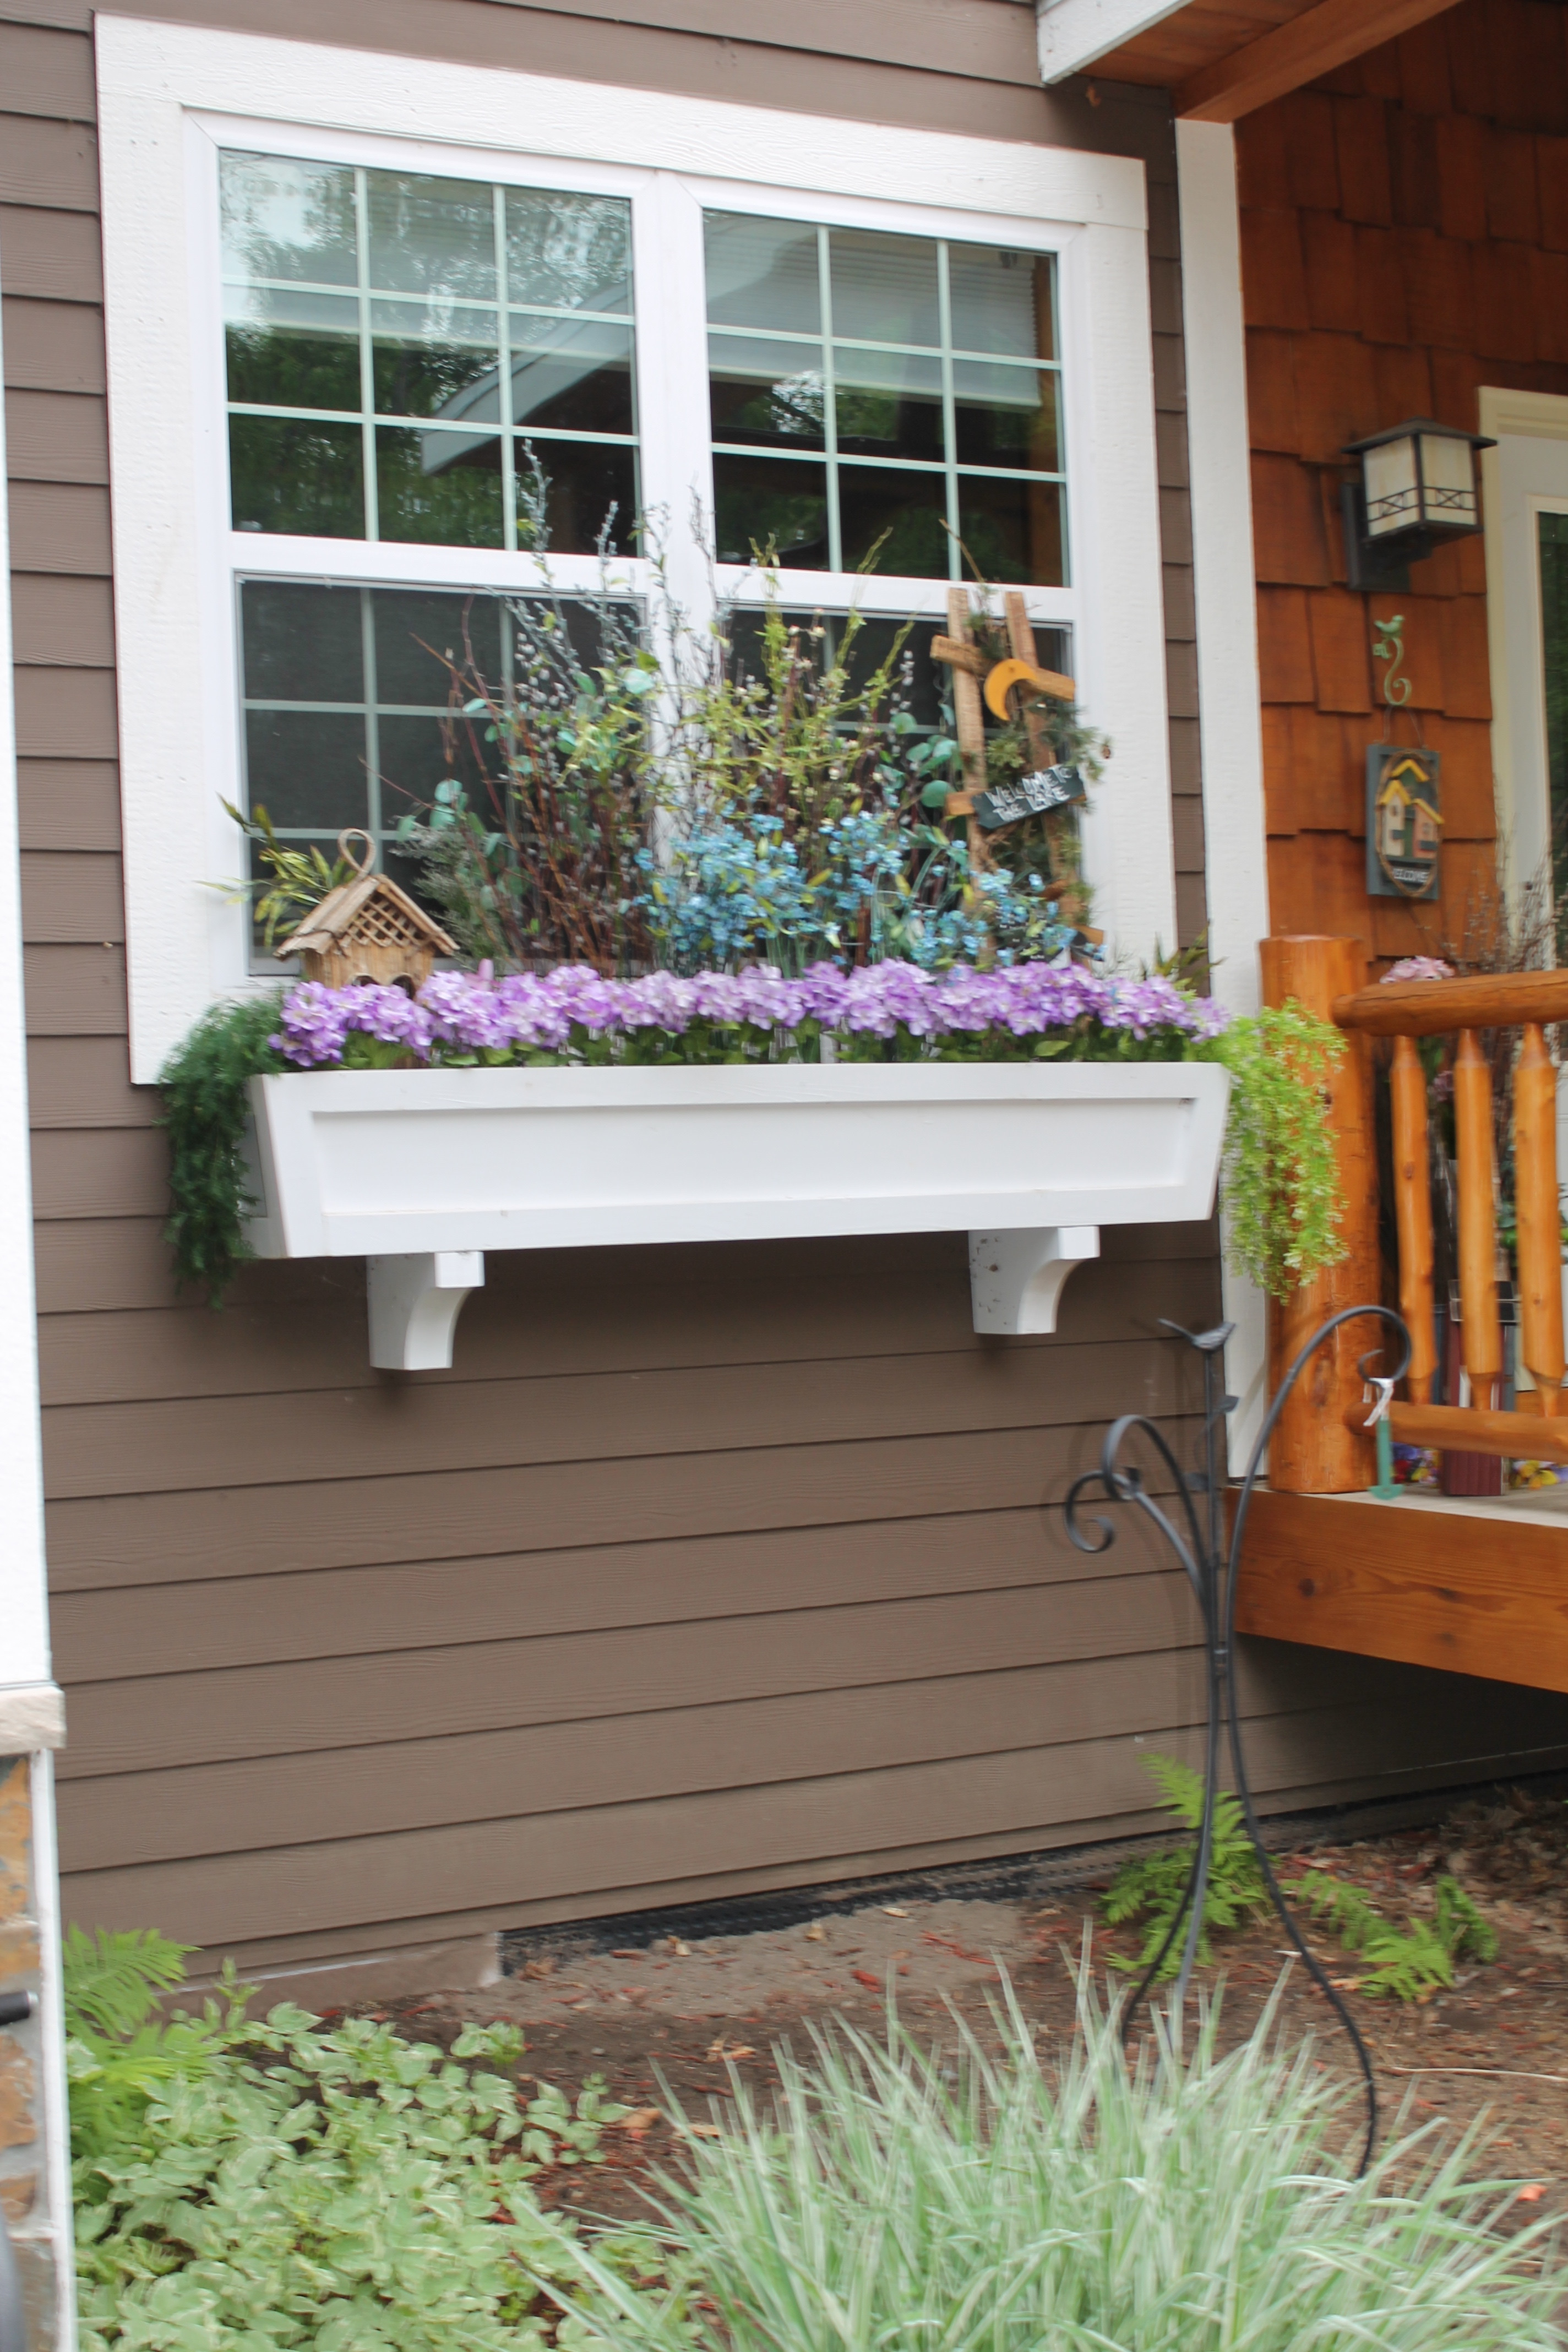 Best ideas about Window Boxes DIY . Save or Pin Remodelaholic Now.